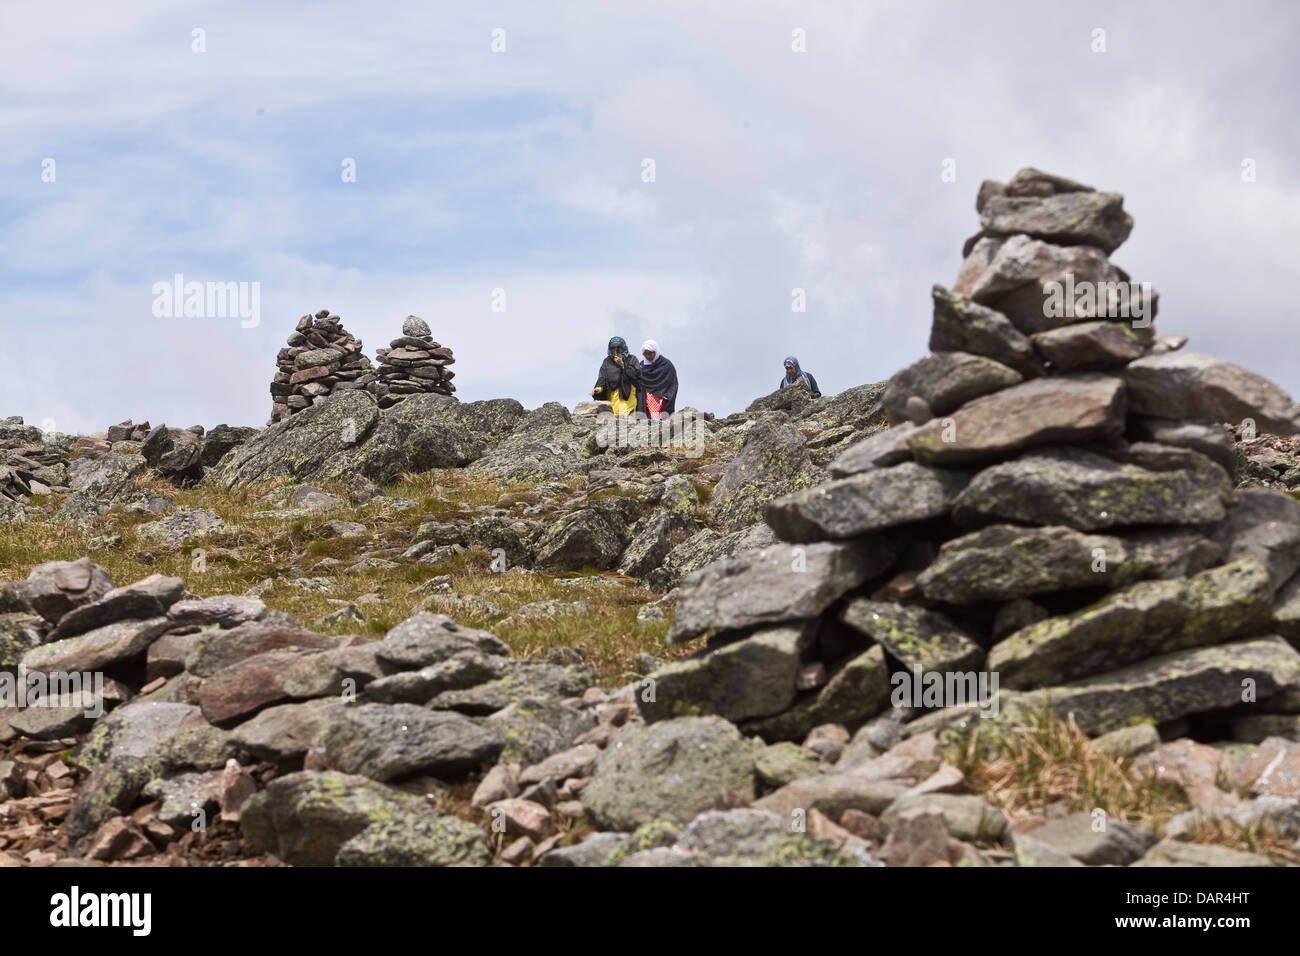 Women wearing hijabs walk amongst cairns on Mount Washington in New Hampshire - Stock Image